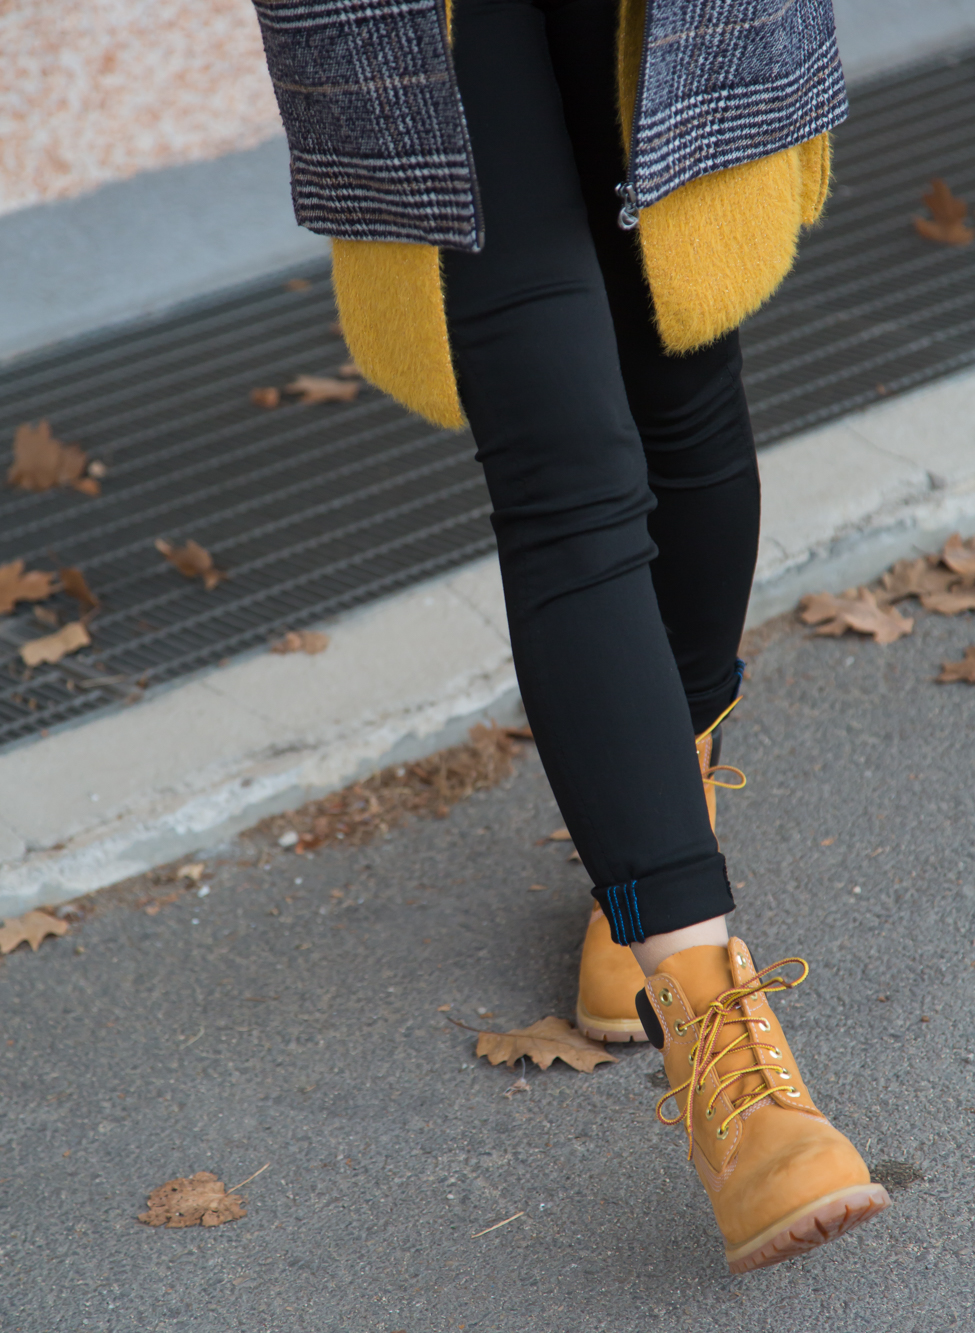 BLACK&YELLOW outfit donna inverno